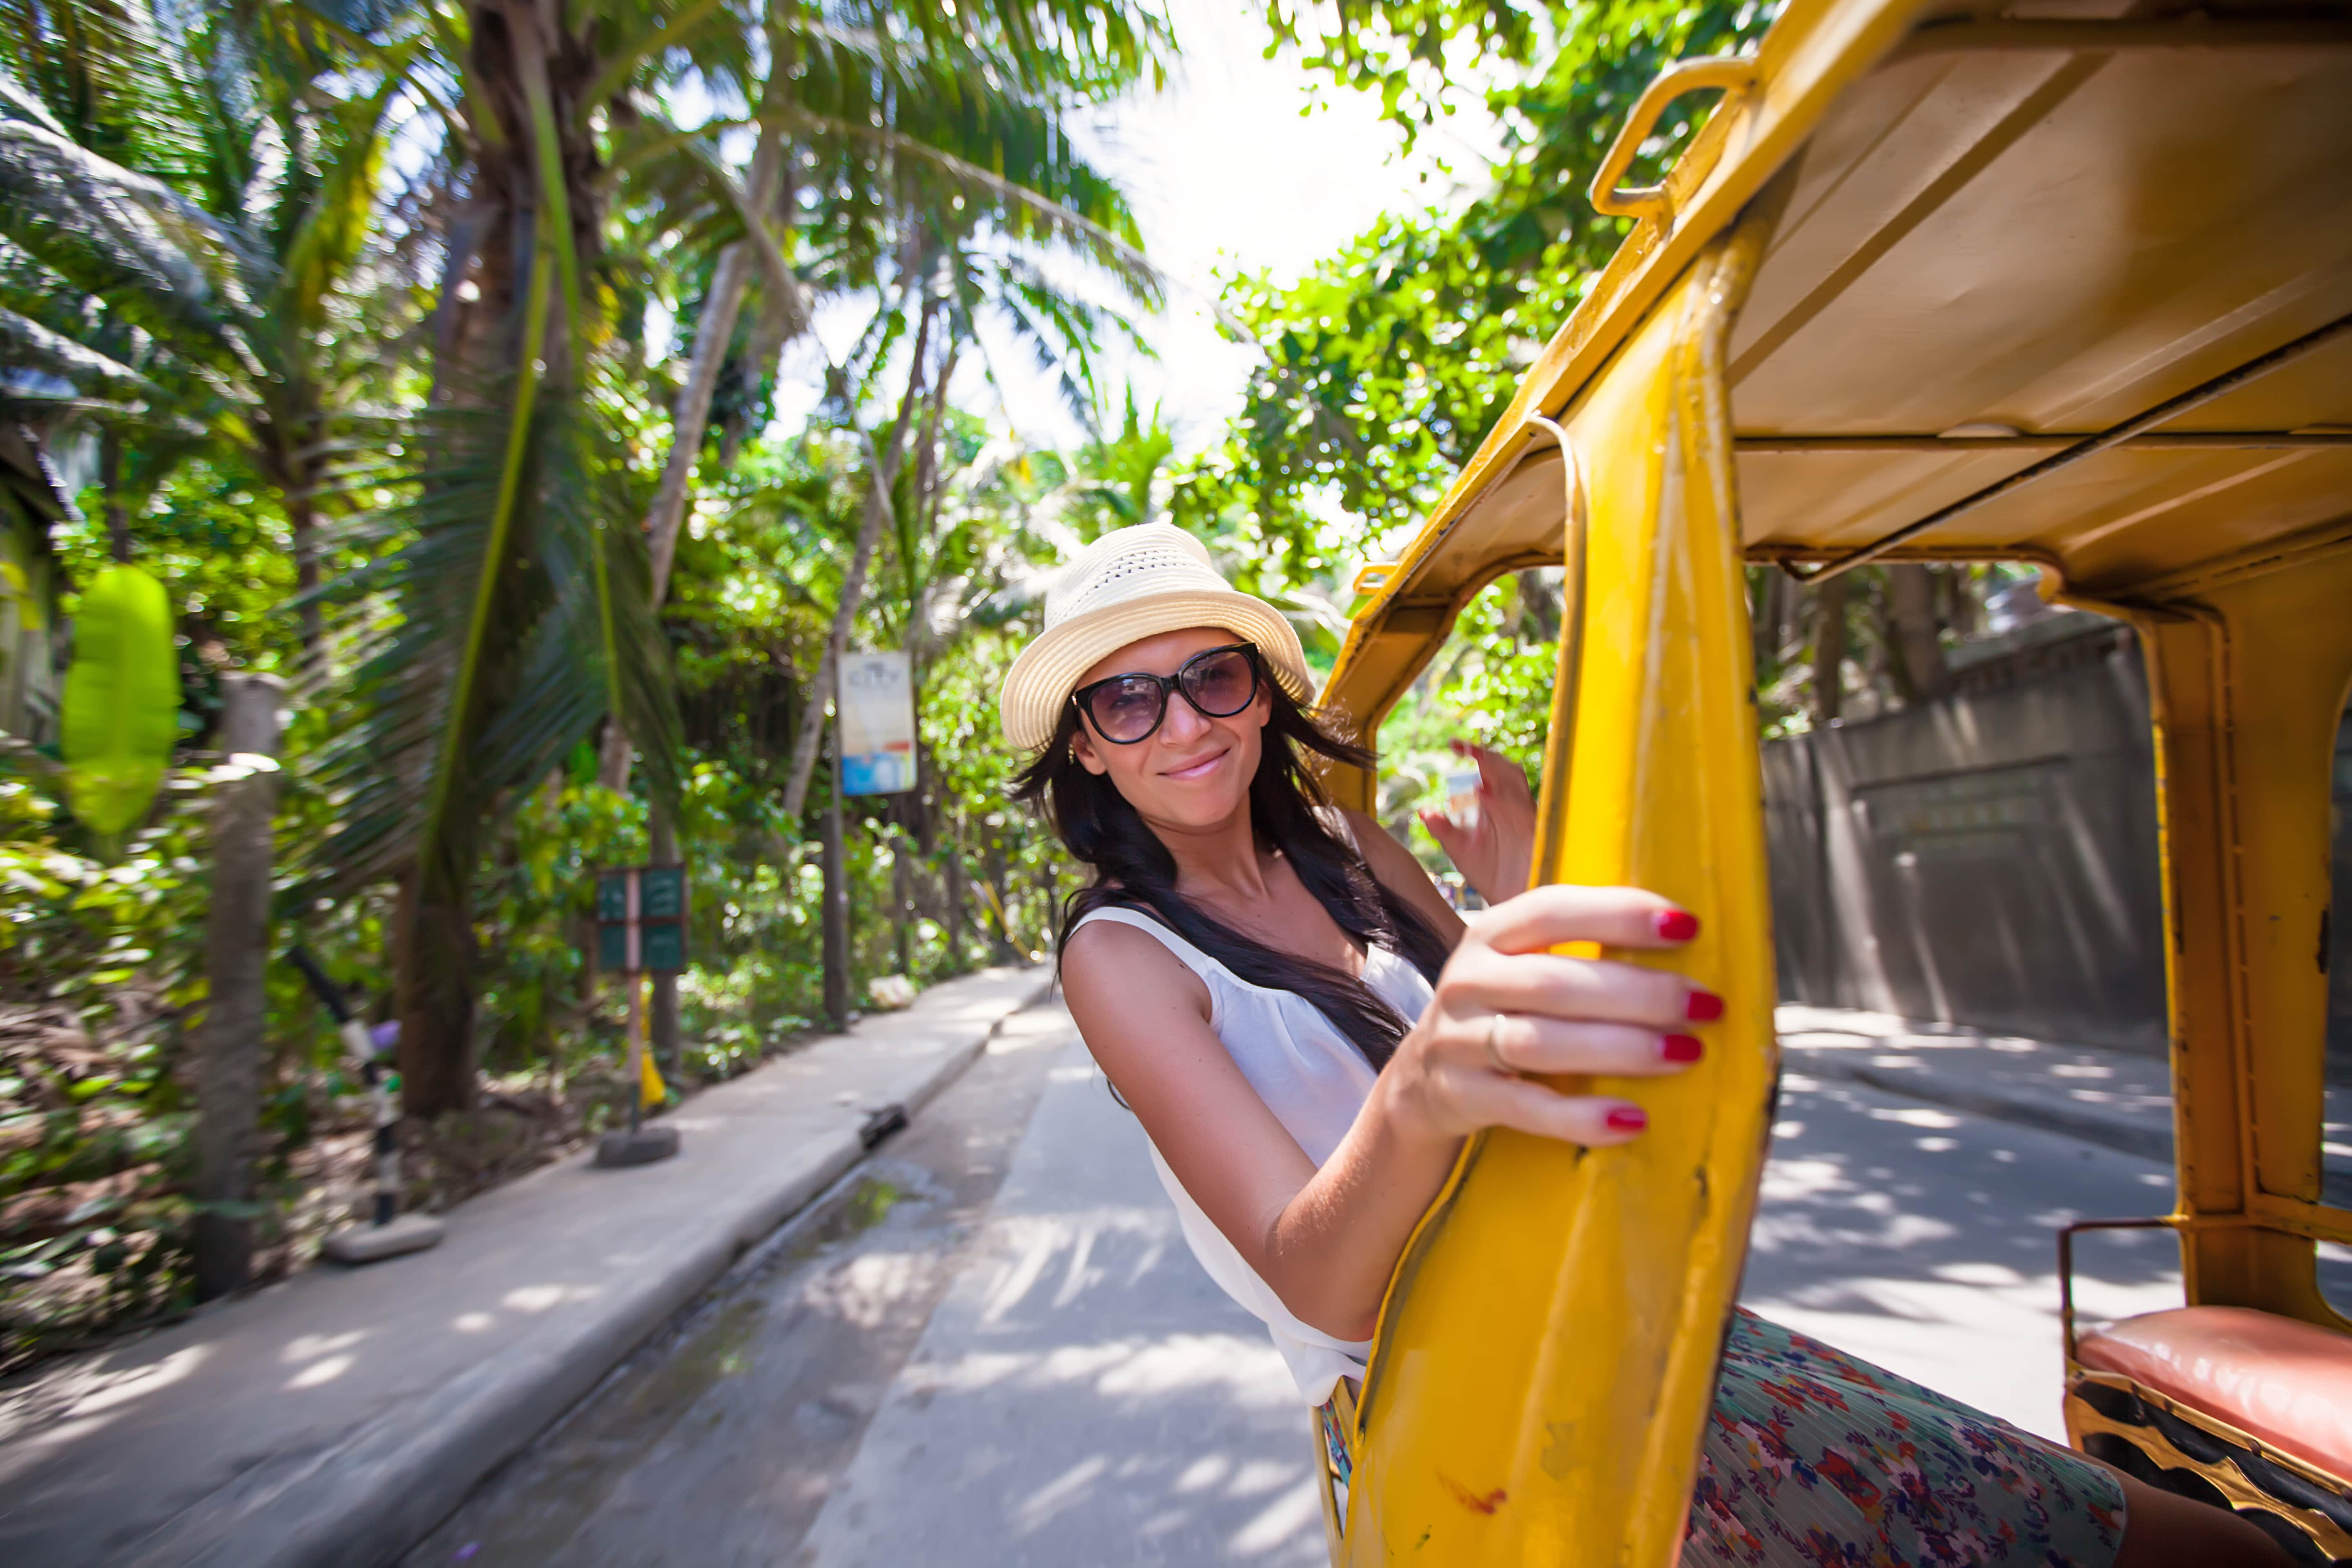 Electronic tricycle for your quick Boracay tour